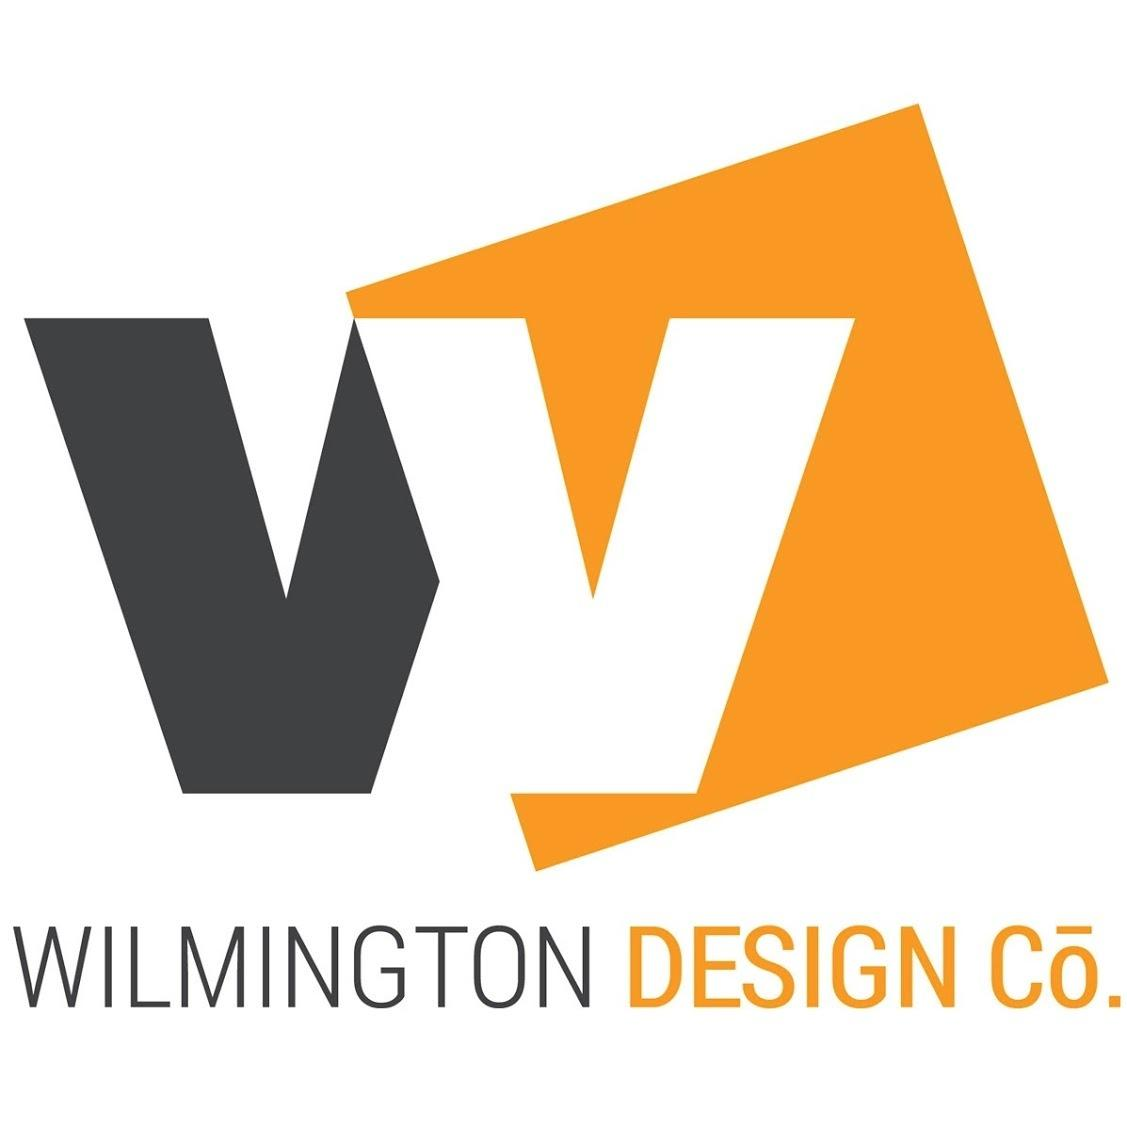 Wilmington design company 3517 wrightsville avenue suite a for Remodeling companies